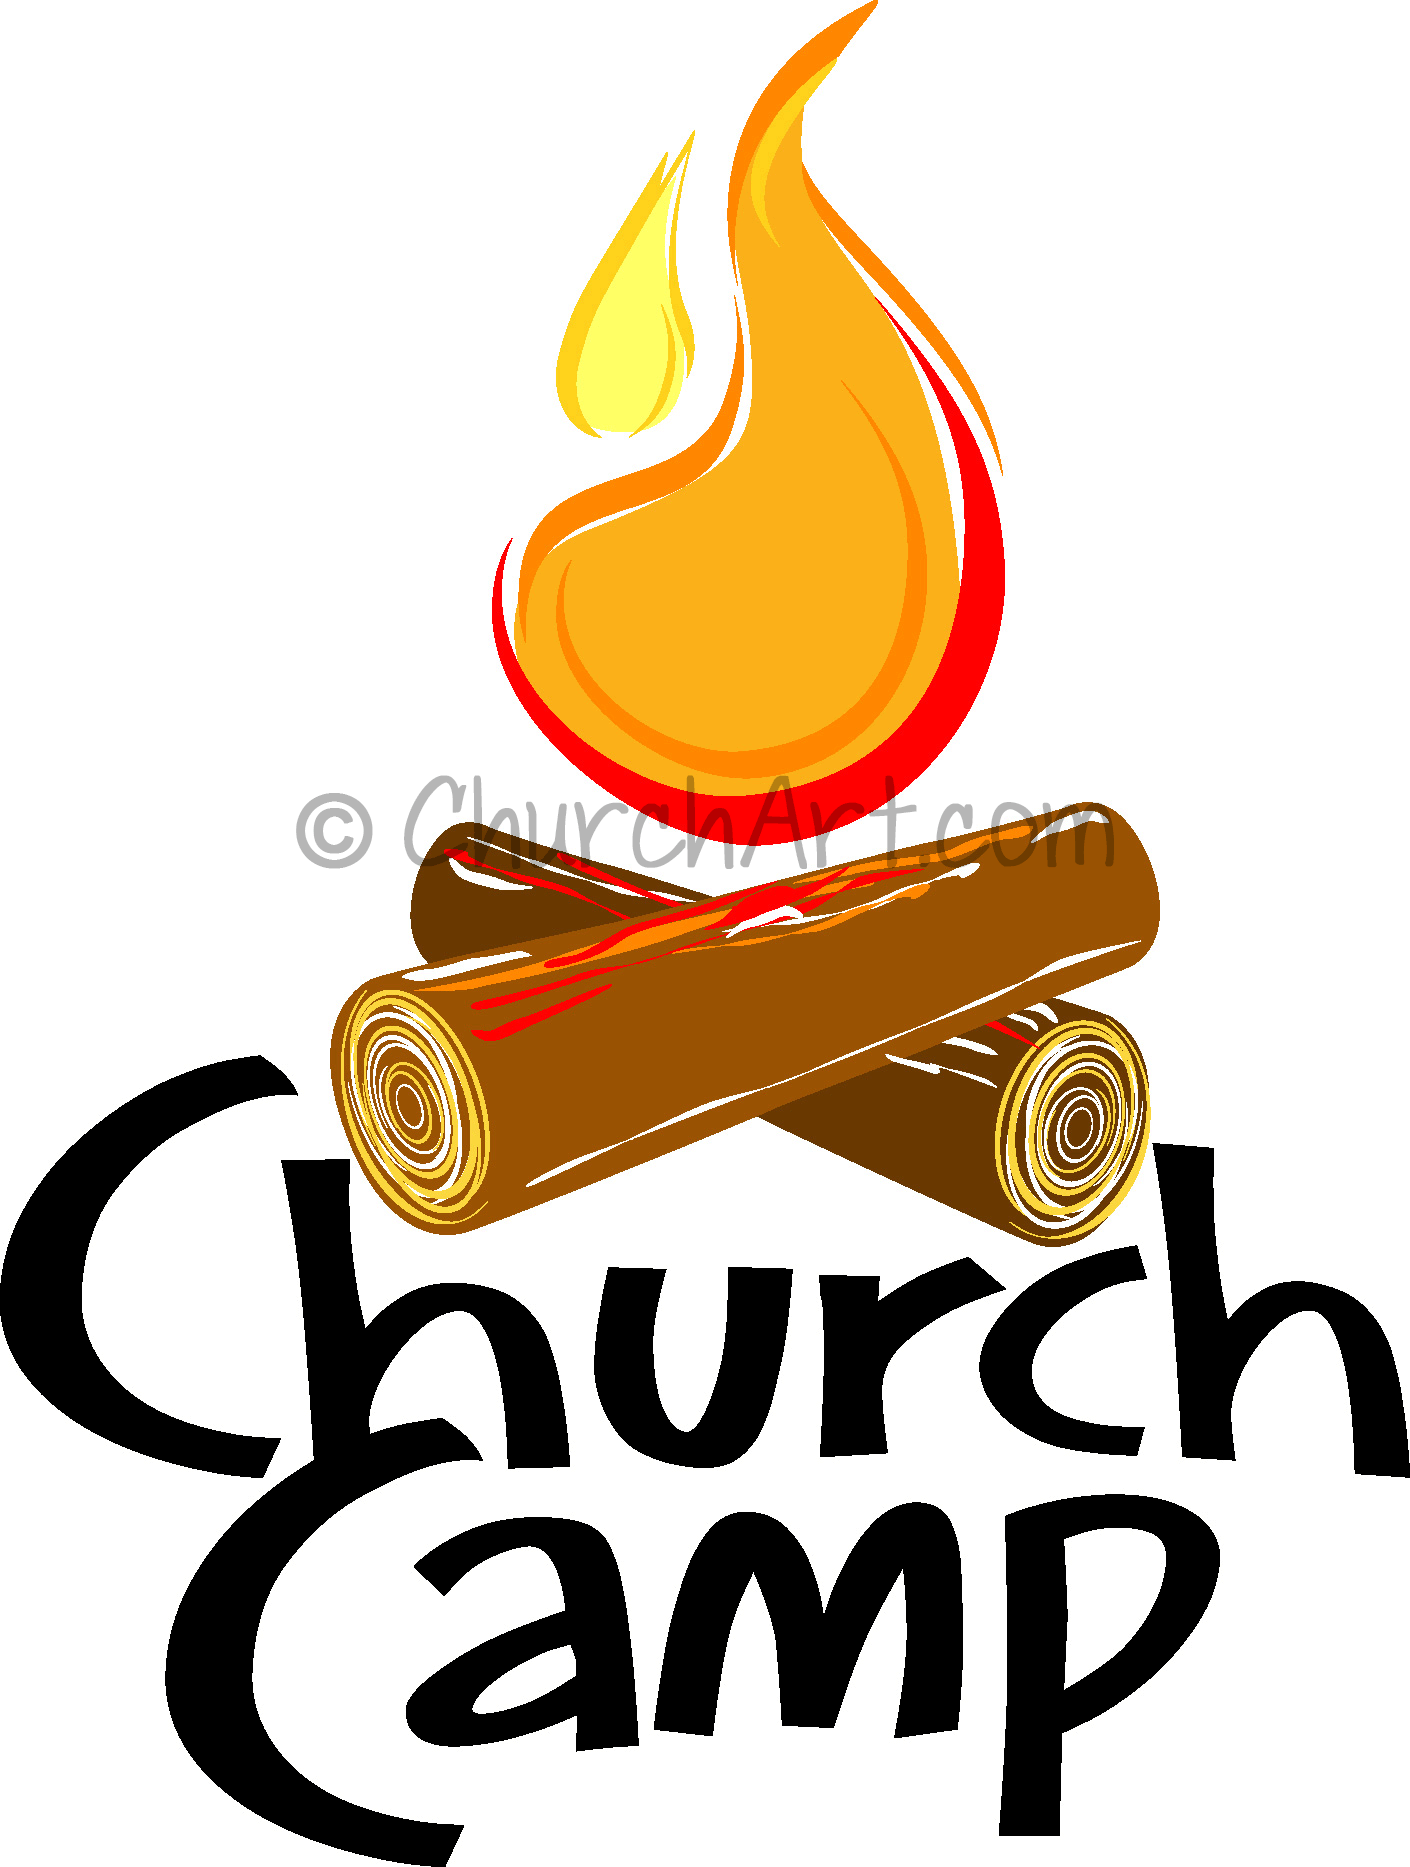 Clip art image for Church Camp featuring bonfire with logs and fire